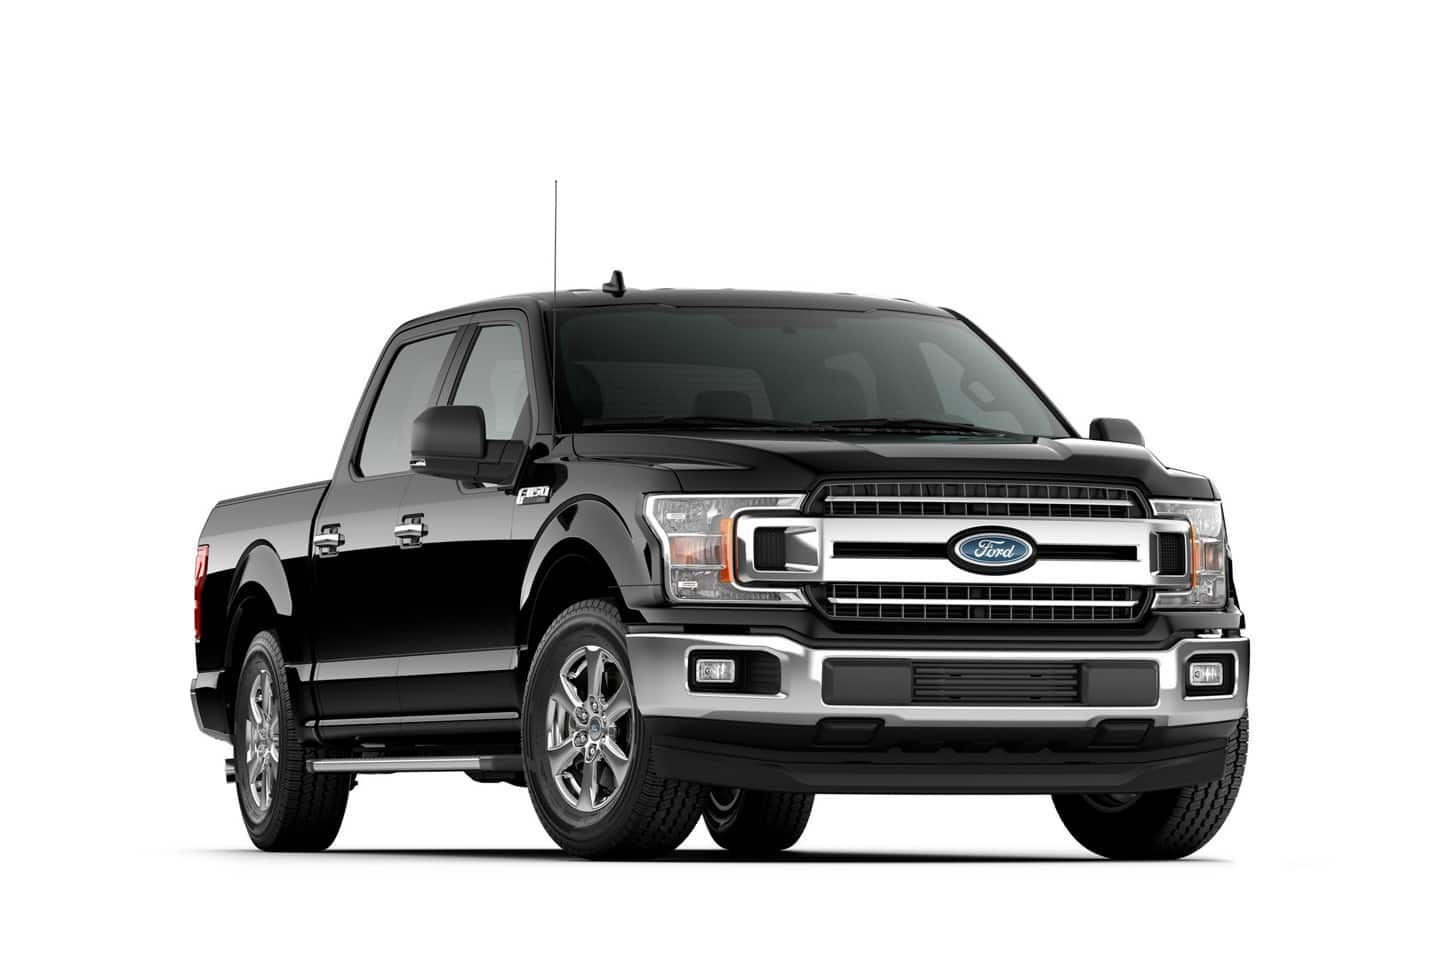 23 Great 2020 Ford Lobo 2018 Price with 2020 Ford Lobo 2018